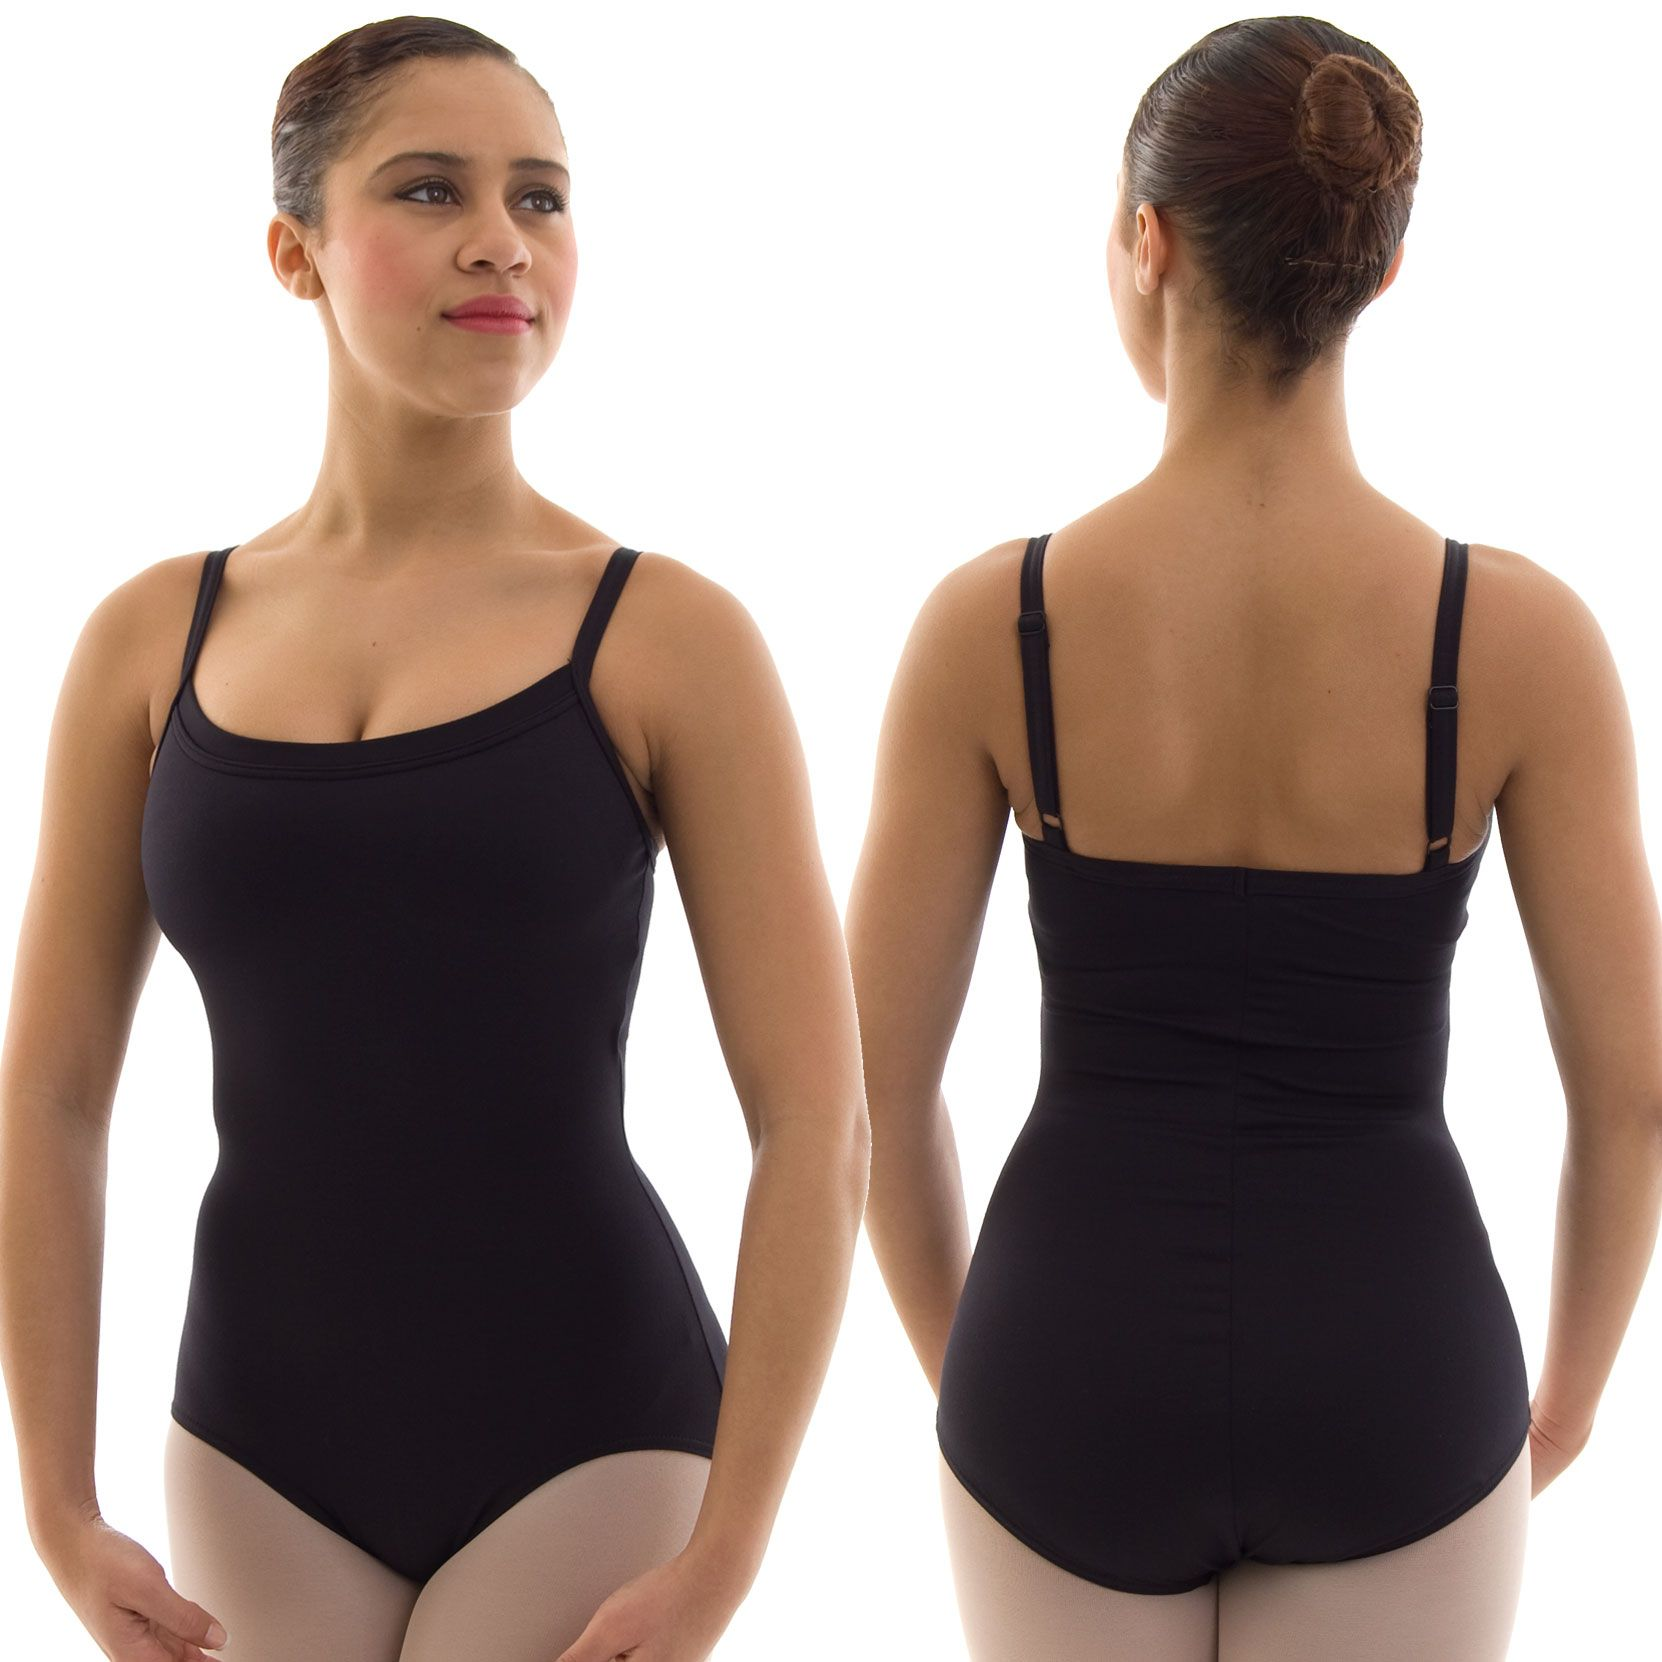 Buy Dancewear Online | Dance Clothing, Shoes & More